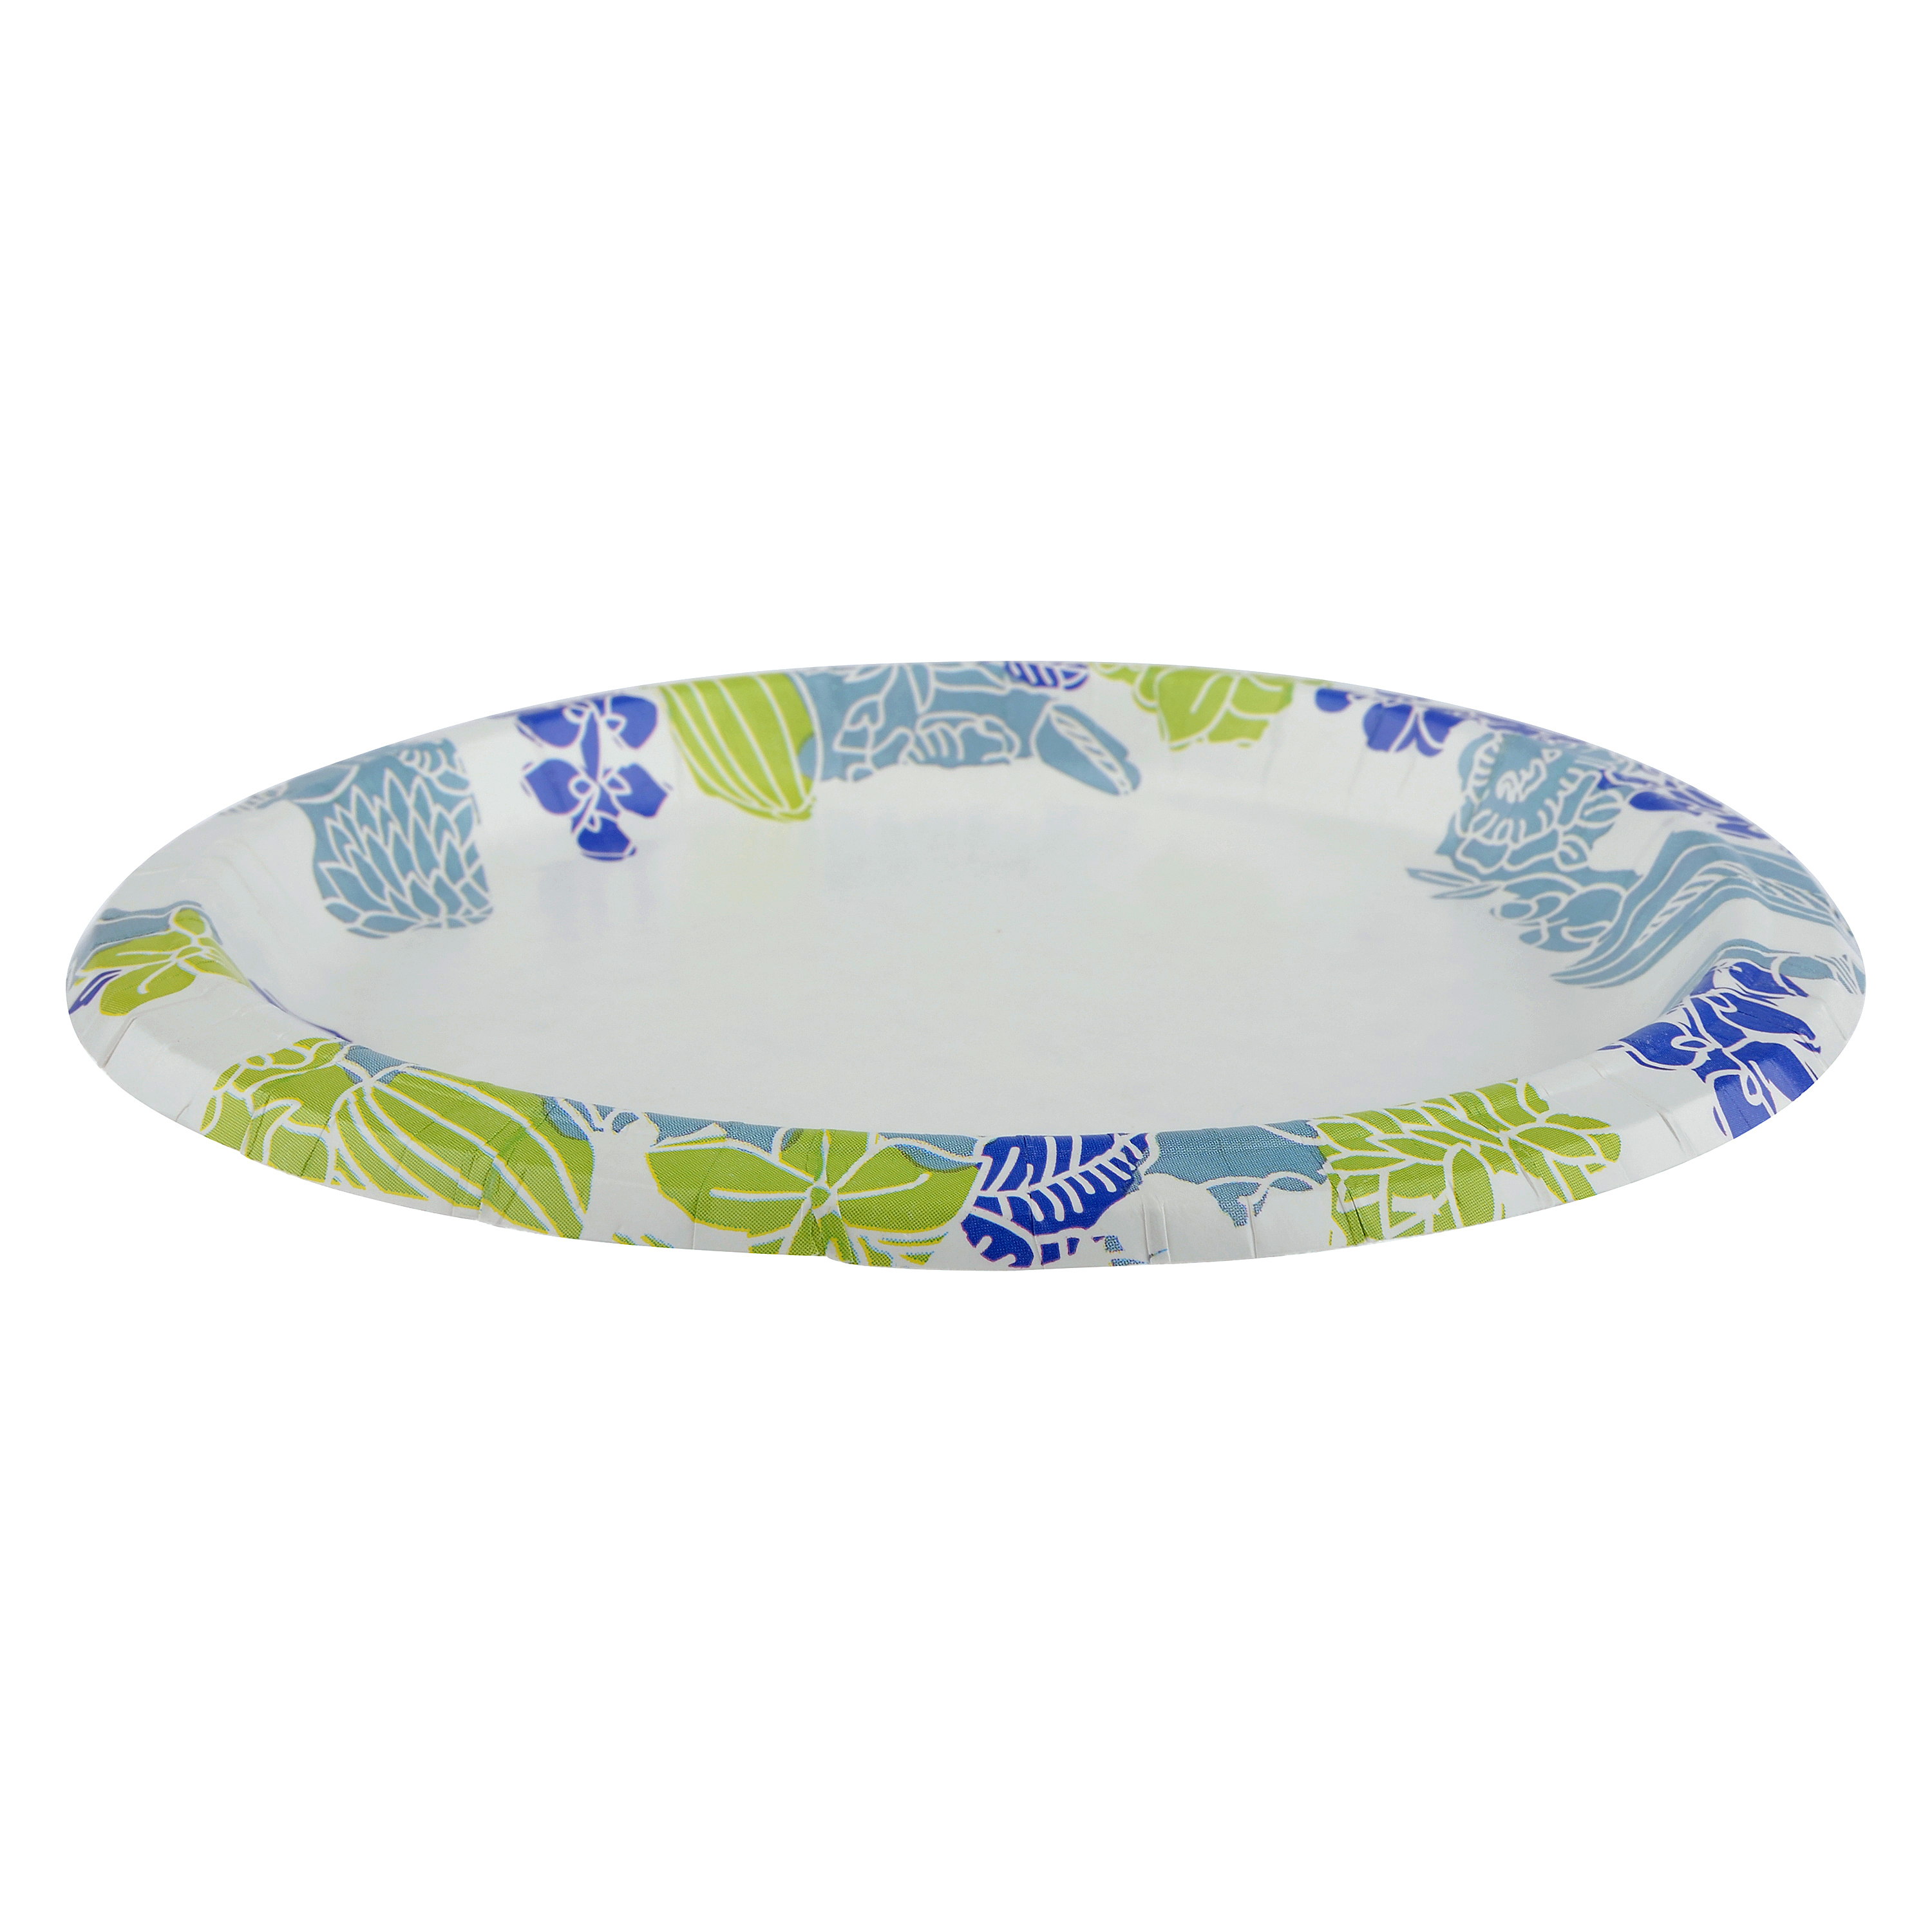 Great Value Everyday Premium Paper Plates 8 5/8  100 Count Image  sc 1 st  Walmart & Great Value Everyday Premium Paper Plates 8 5/8